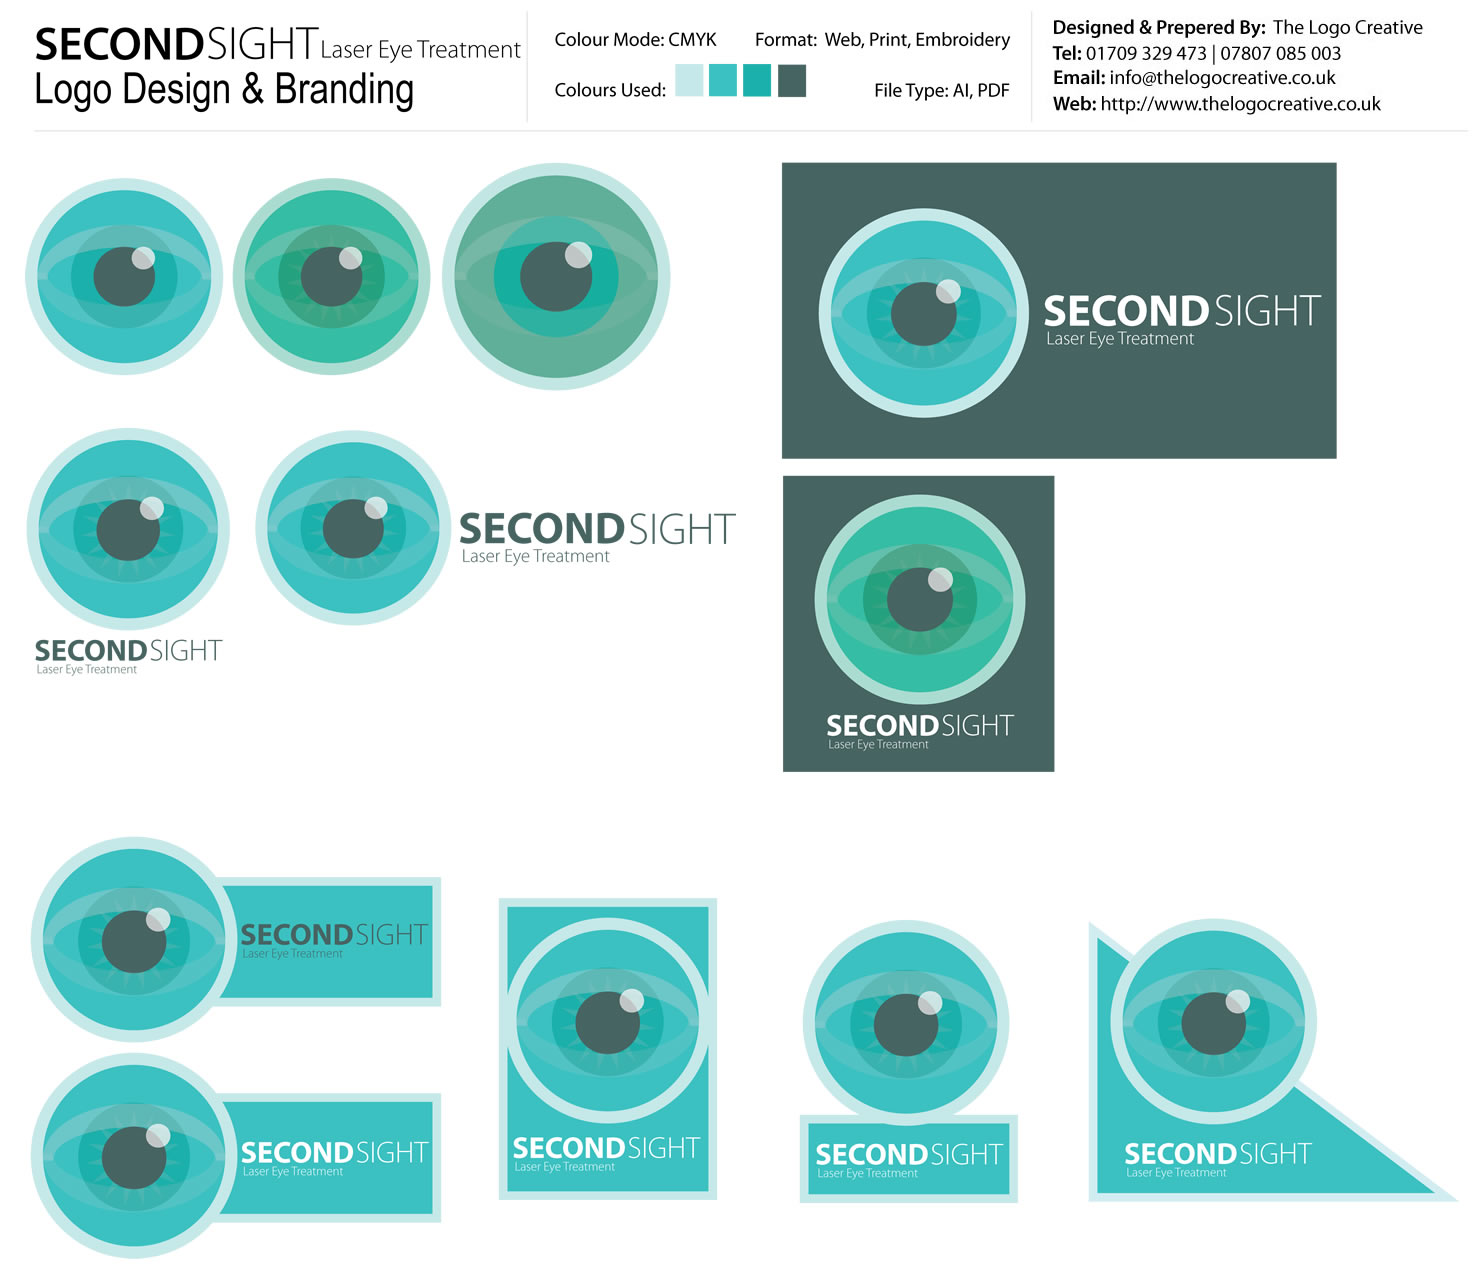 Second Sight Laser Eye Treament Logo and Brand Identity Design